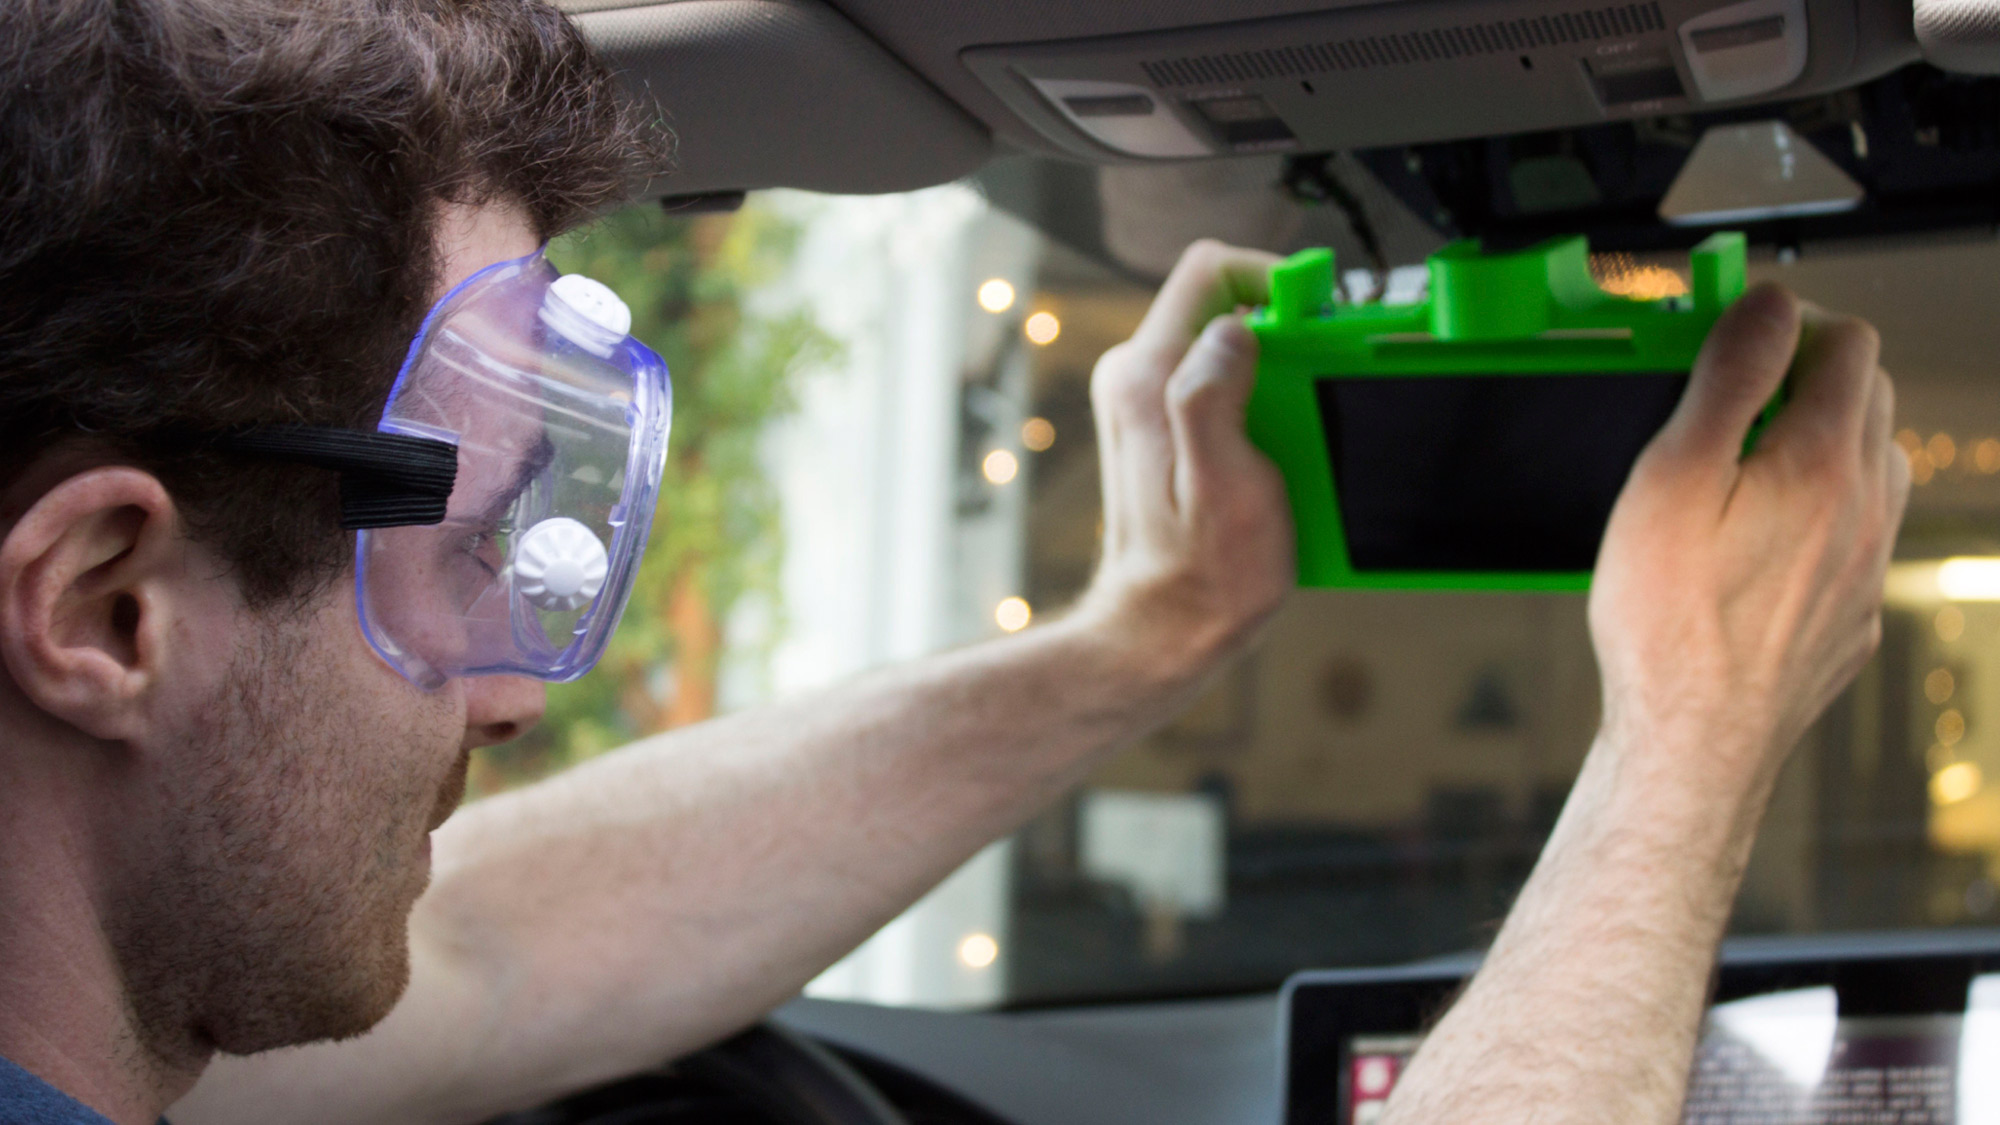 George Hotz Comma One self-driving kit